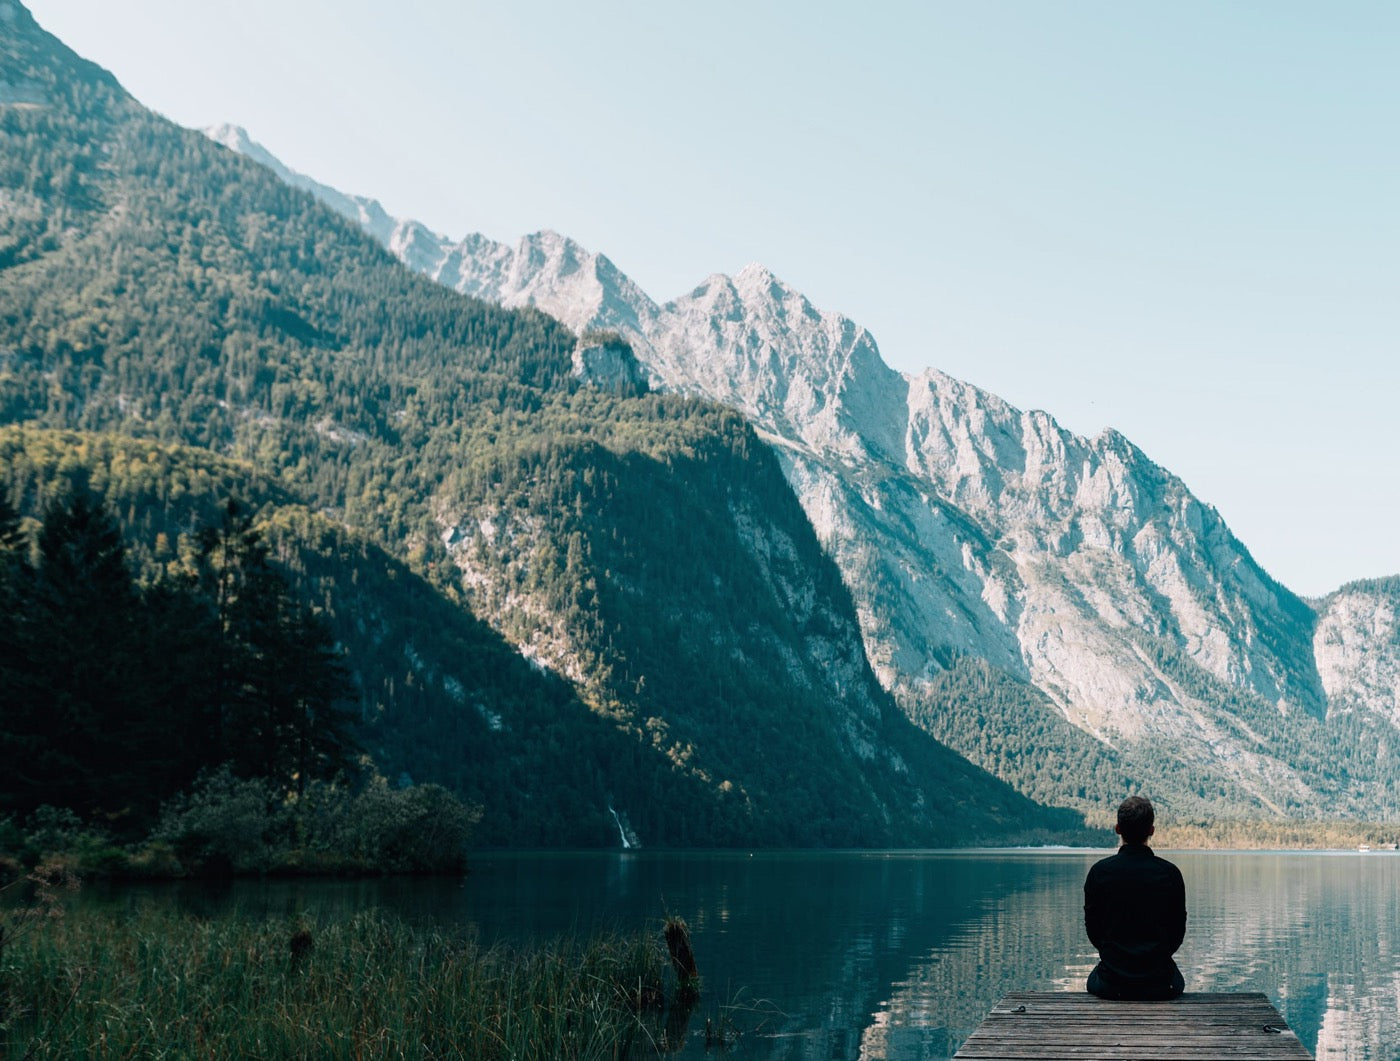 Person sitting quietly and overlooking a beautiful mountain lake